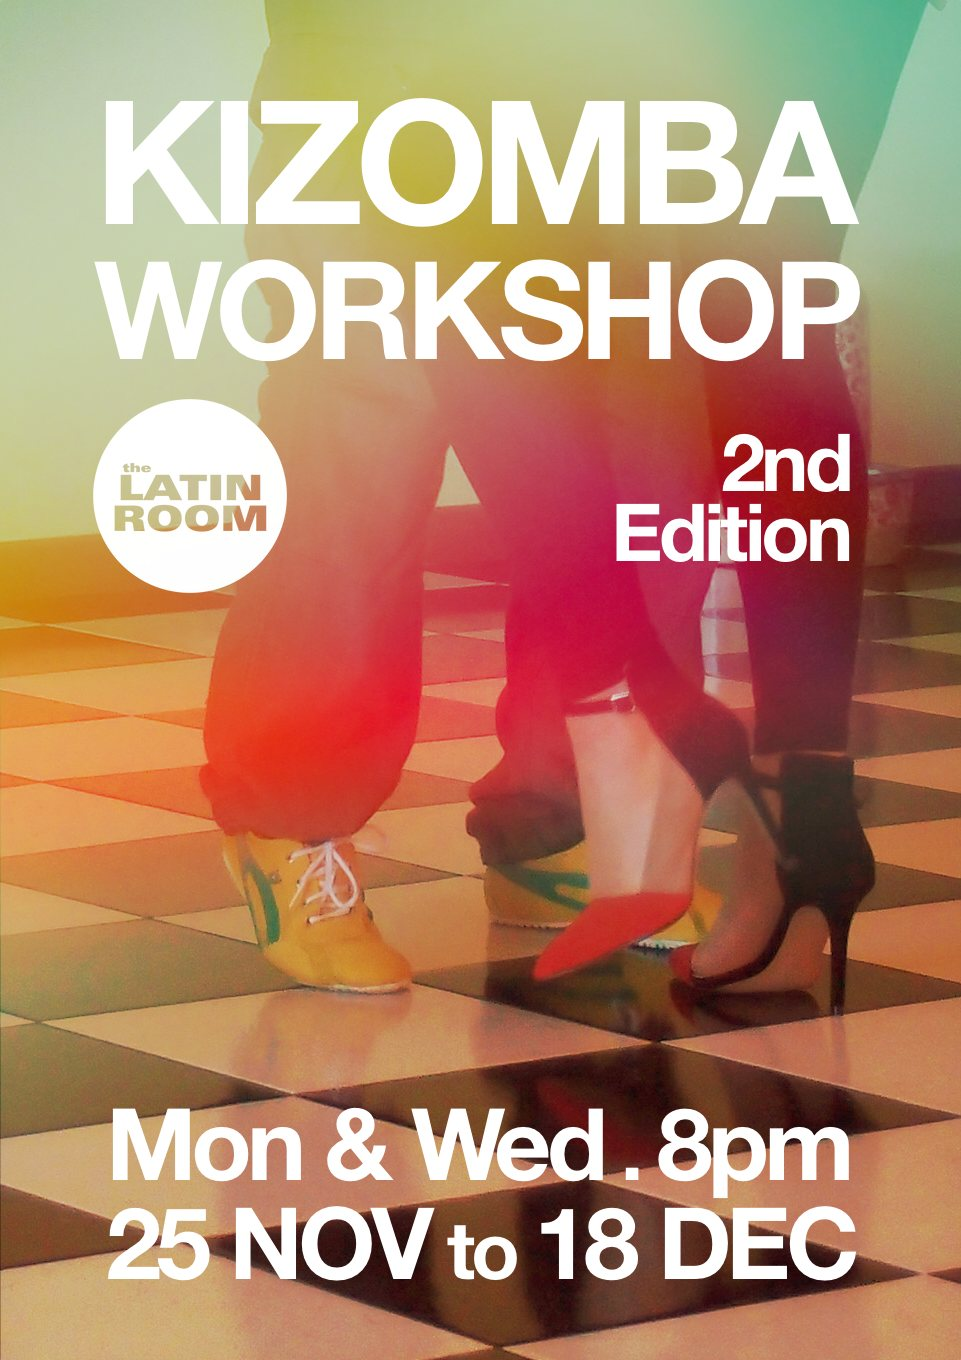 KIZOMBA WORKSHOP 2 - Funchal, Madeira - EN